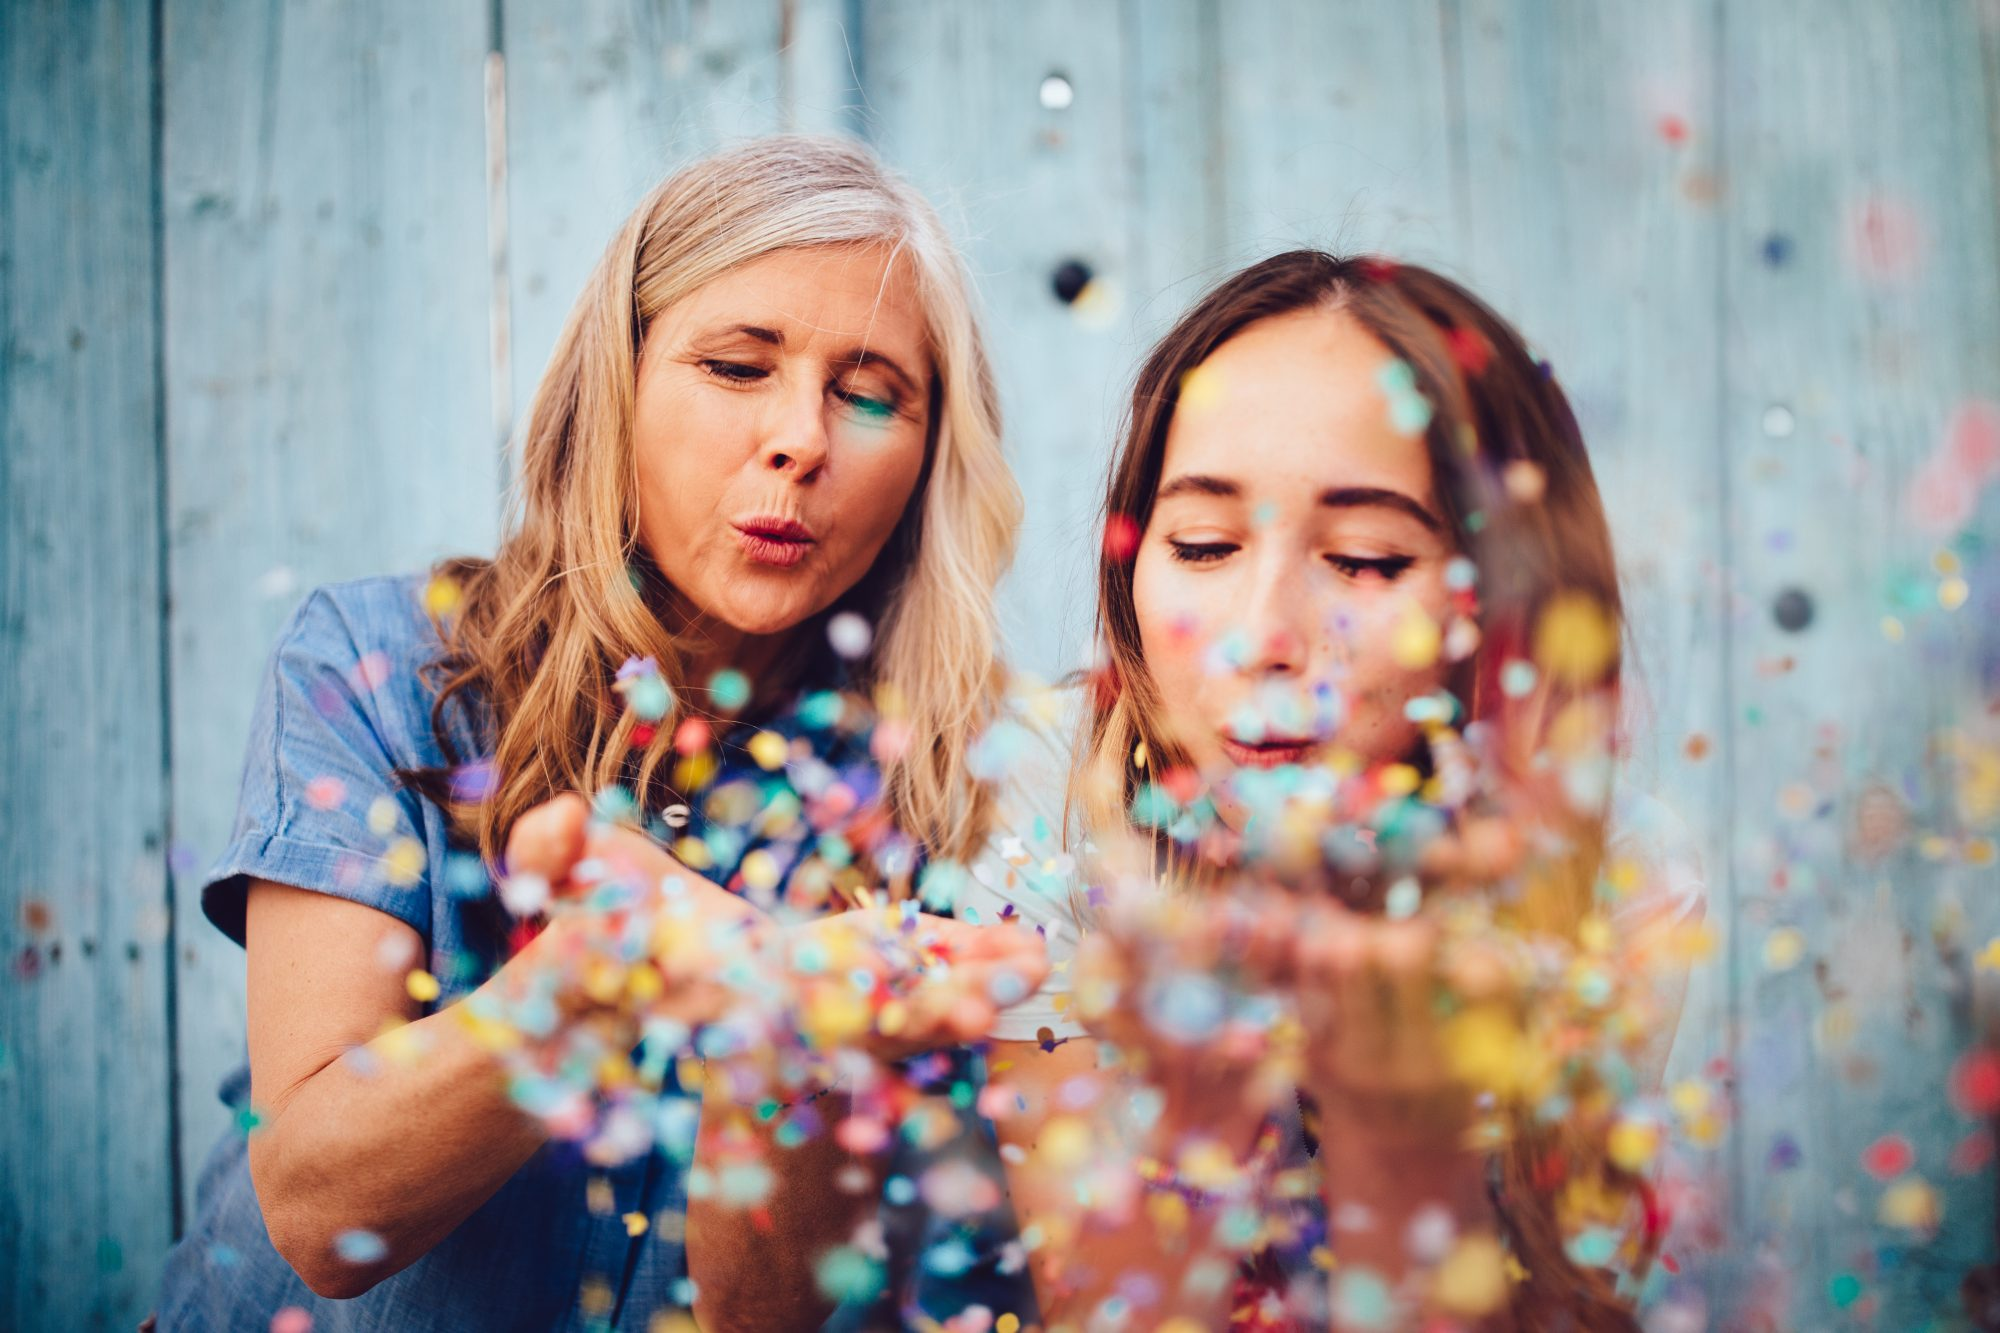 Two women blow confetti into the air in celebration.